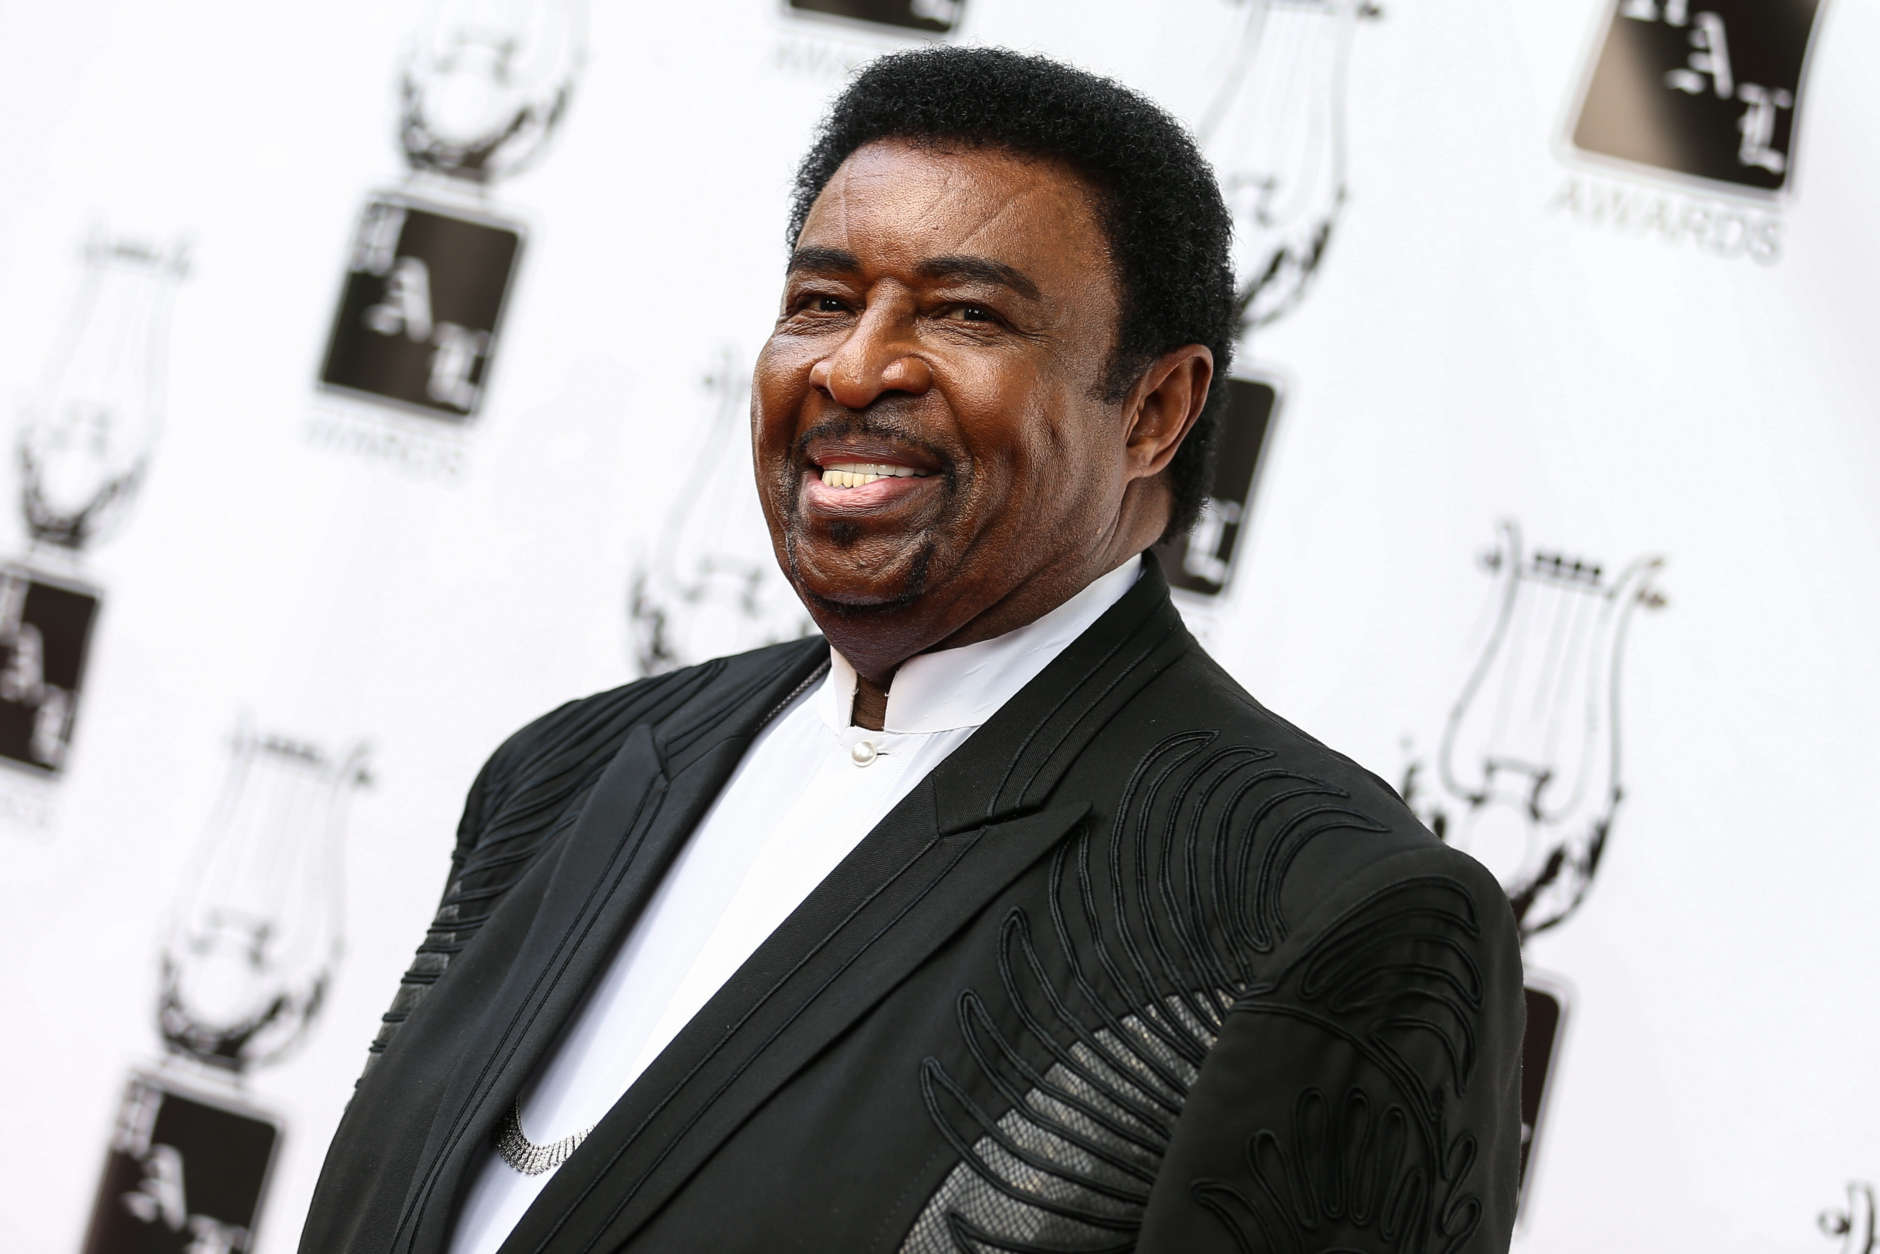 Dennis Edwards attends the 26th Annual Heroes and Legends Awards held at The Beverly Hills Hotel on Sunday, Sept. 27, 2015, in Beverly Hills, Calif. (Photo by John Salangsang/Invision/AP)